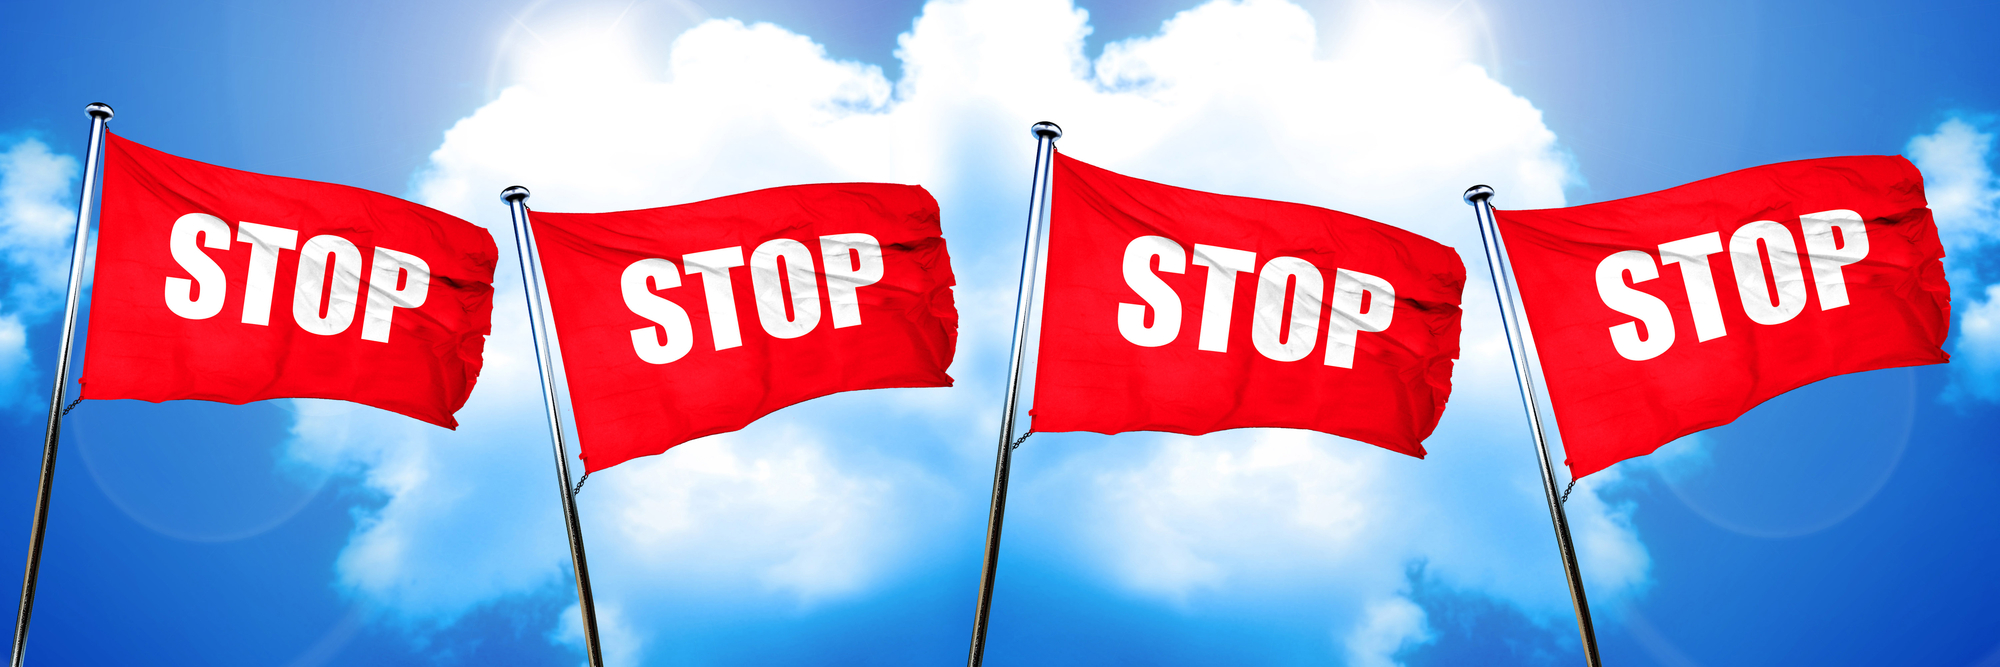 Stop sign flag, 3D rendering, red flags